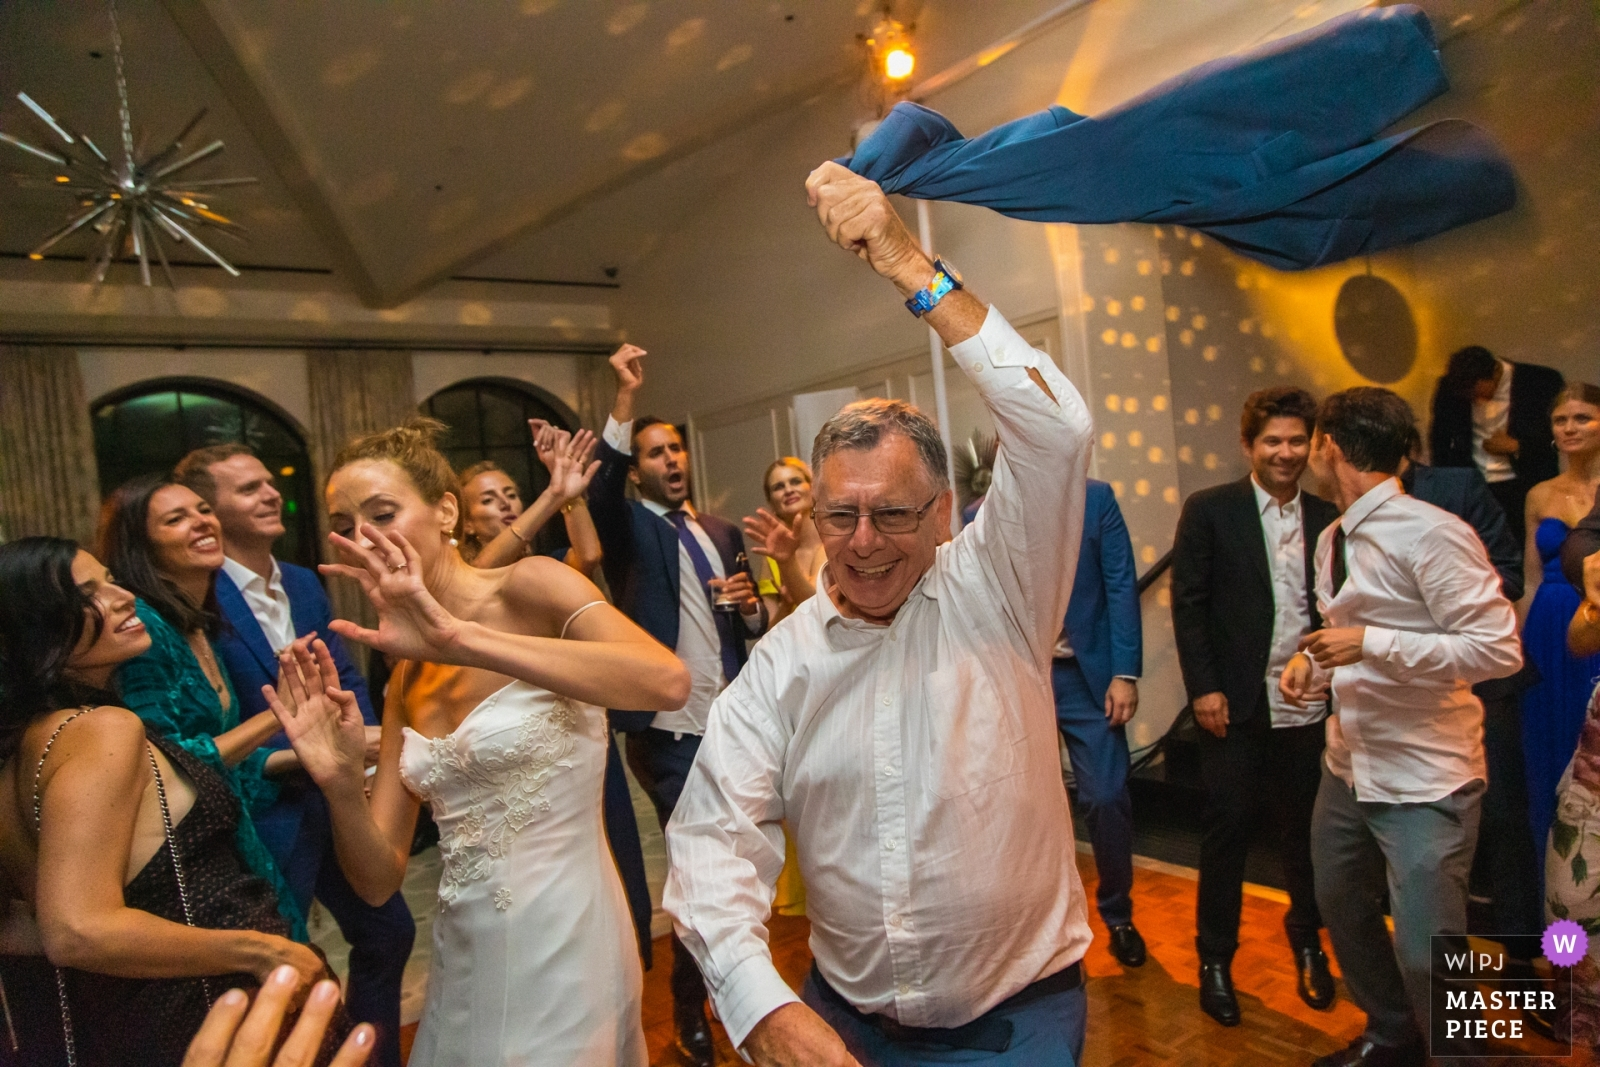 The bride dodges her step-father's jacket being swung in the air on the dance floor. - Los Angeles, California - Southern Wedding Photography -  | Hotel Bel-Air, Los Angeles, California